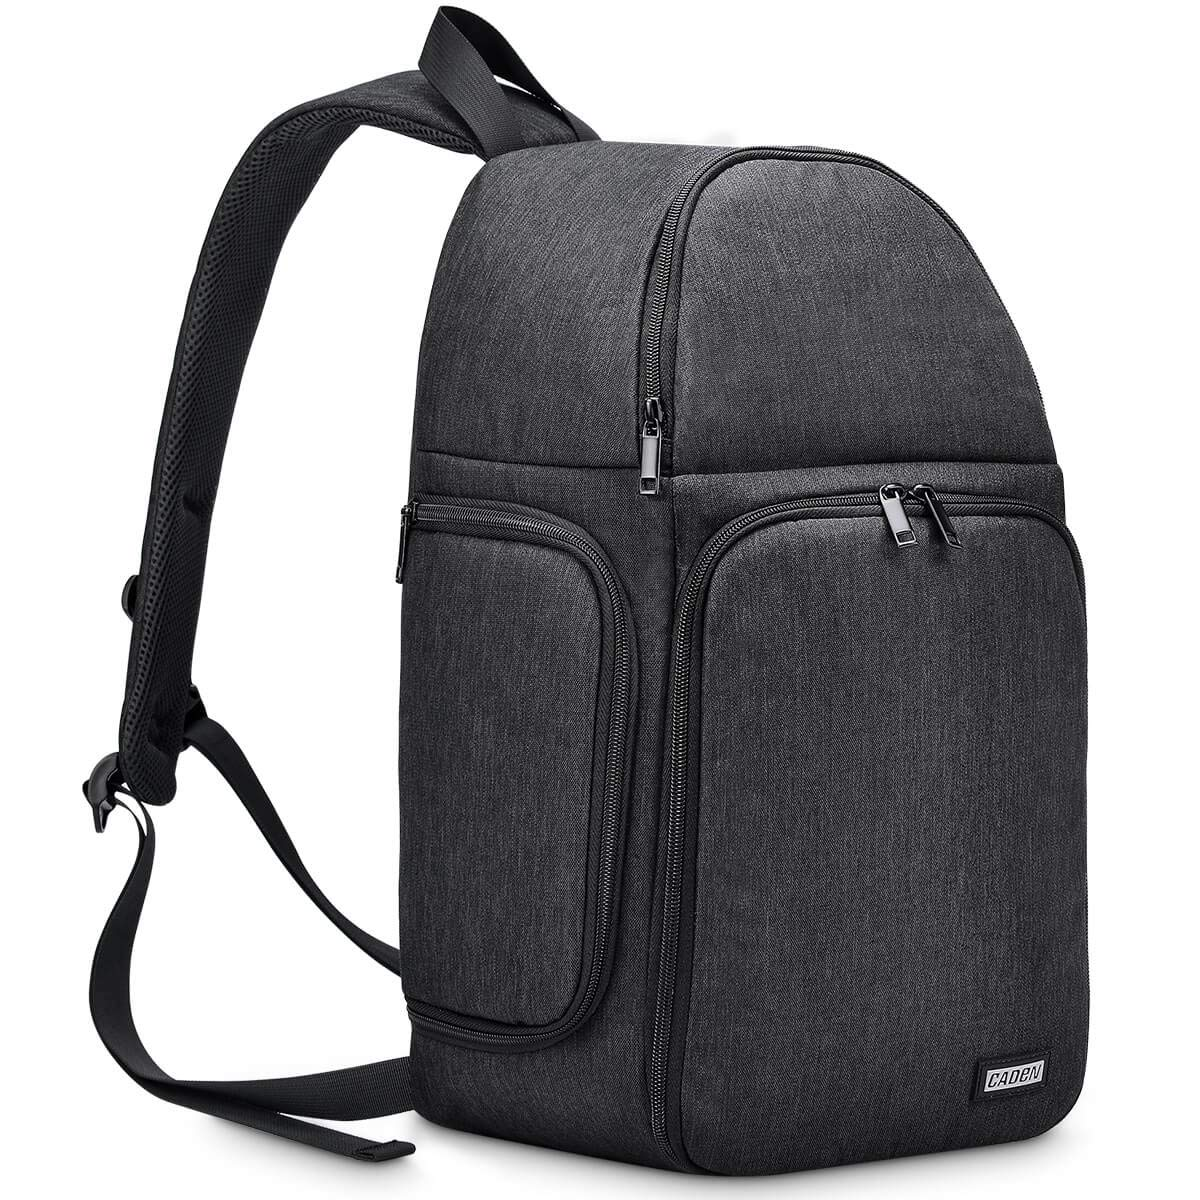 CADeN Camera Bag Sling Backpack, Camera Case Waterproof with Modular Inserts Tripod Holder for DSLR/SLR and Mirrorless Cameras (Canon Nikon Sony Pentax) by CADeN